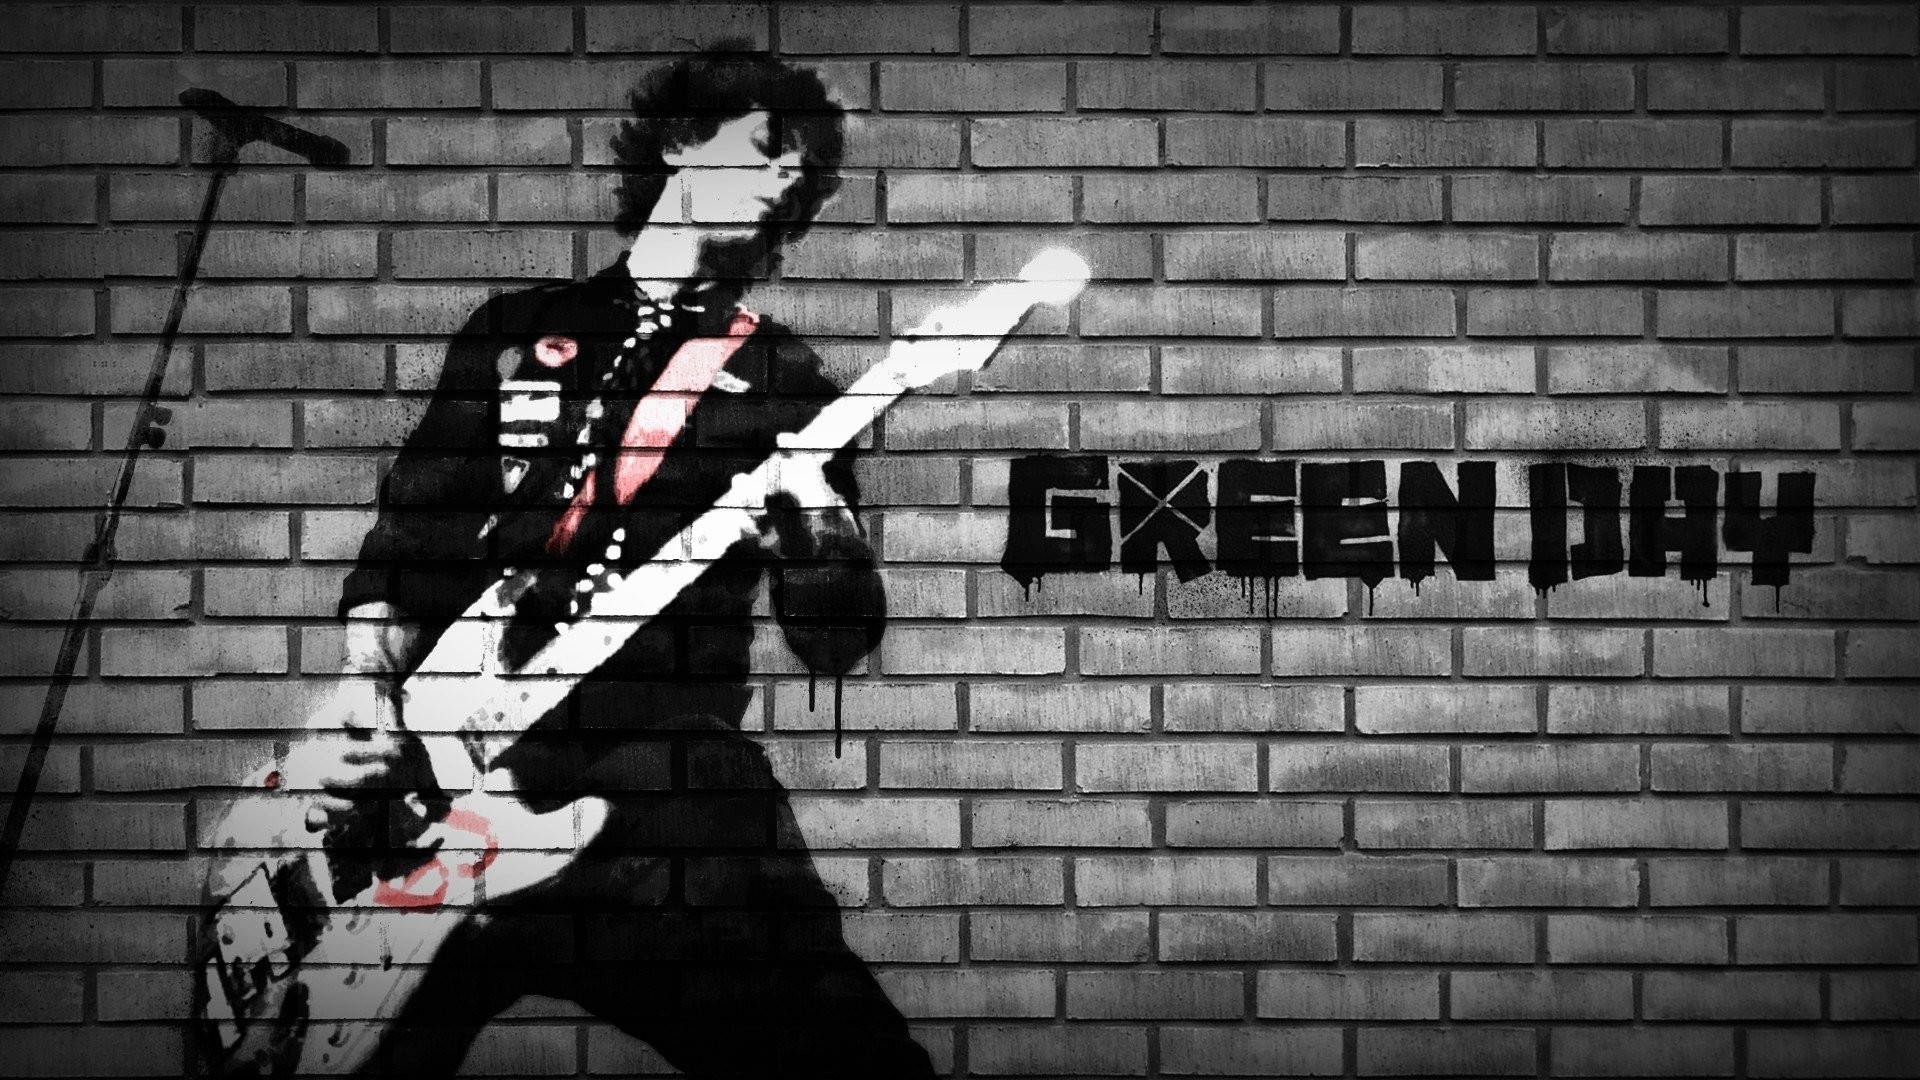 1920x1080 24 Green Day HD Wallpapers | Backgrounds - Wallpaper Abyss